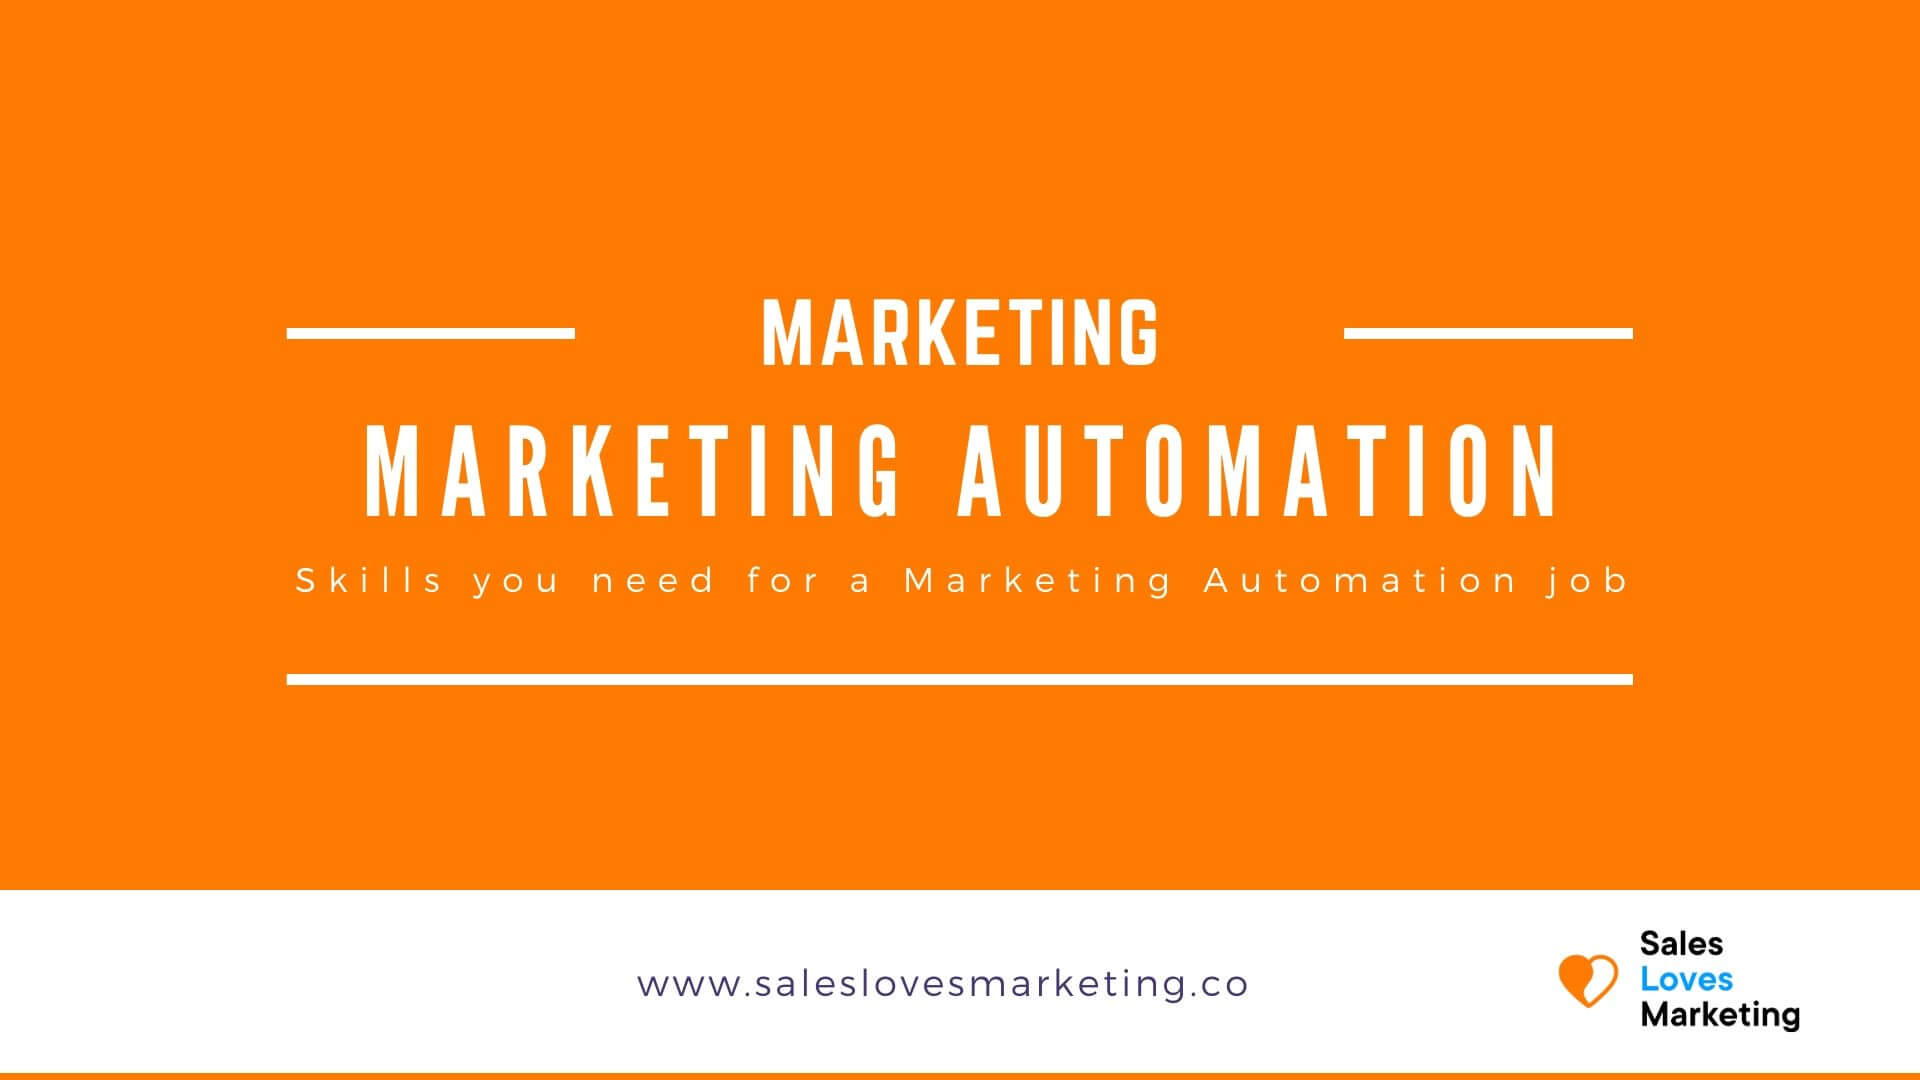 Get a job in marketing automation with these 9 skills